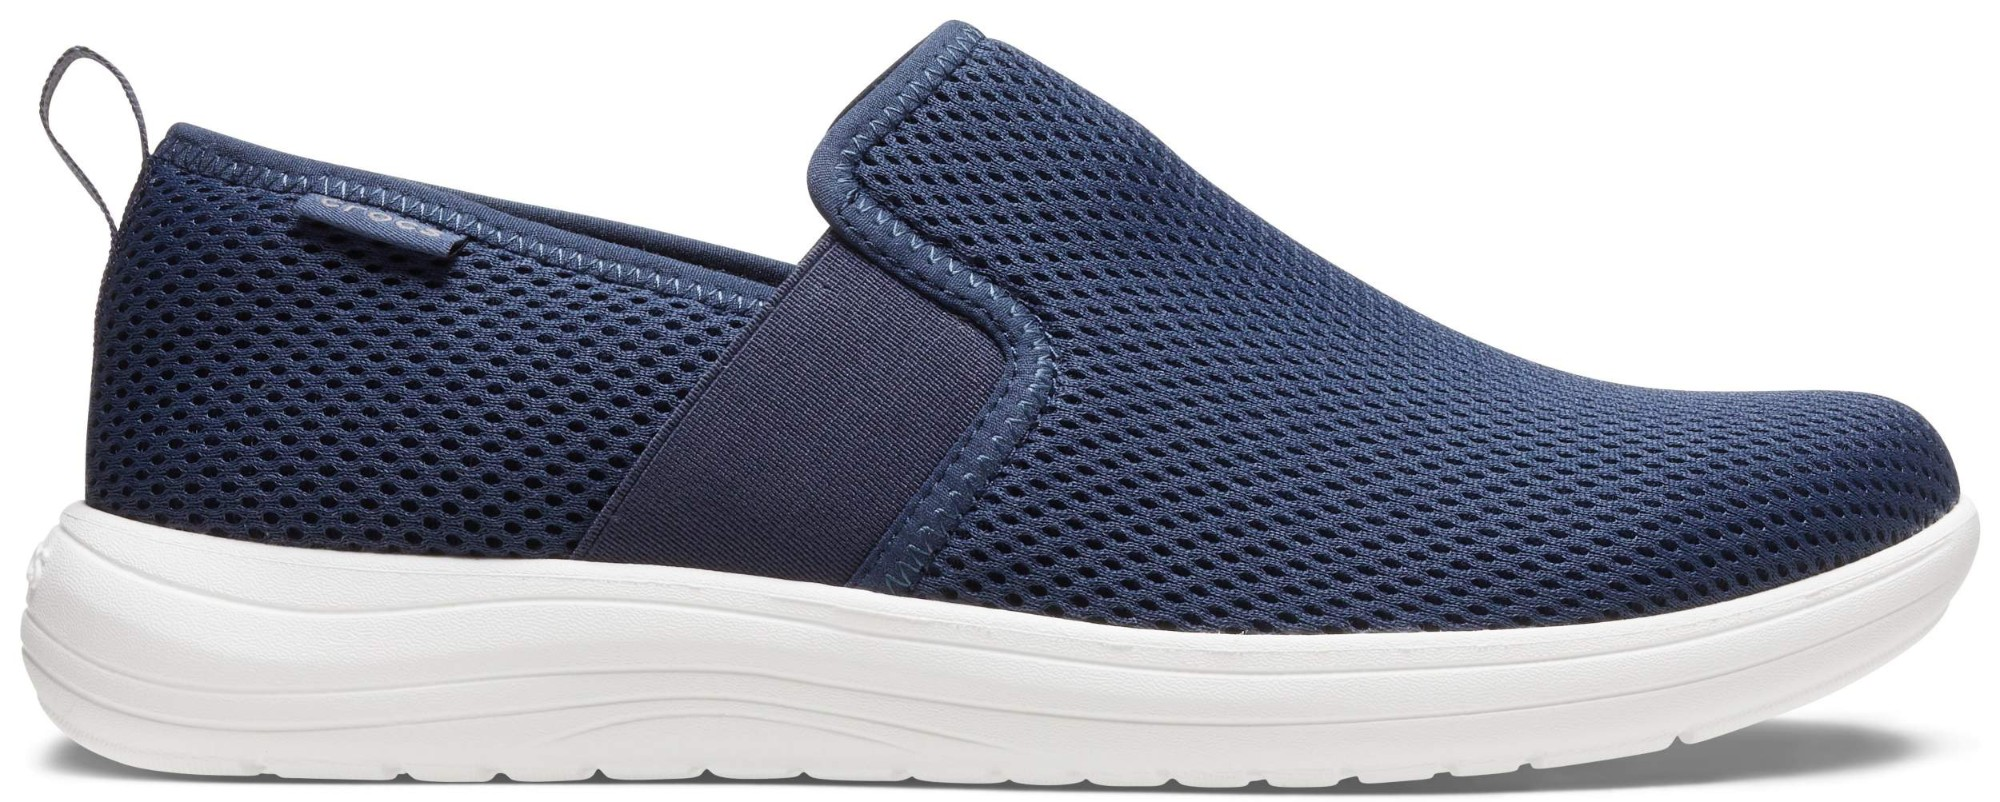 Crocs™ Reviva Low Slip-On Men's Navy/White 44,5